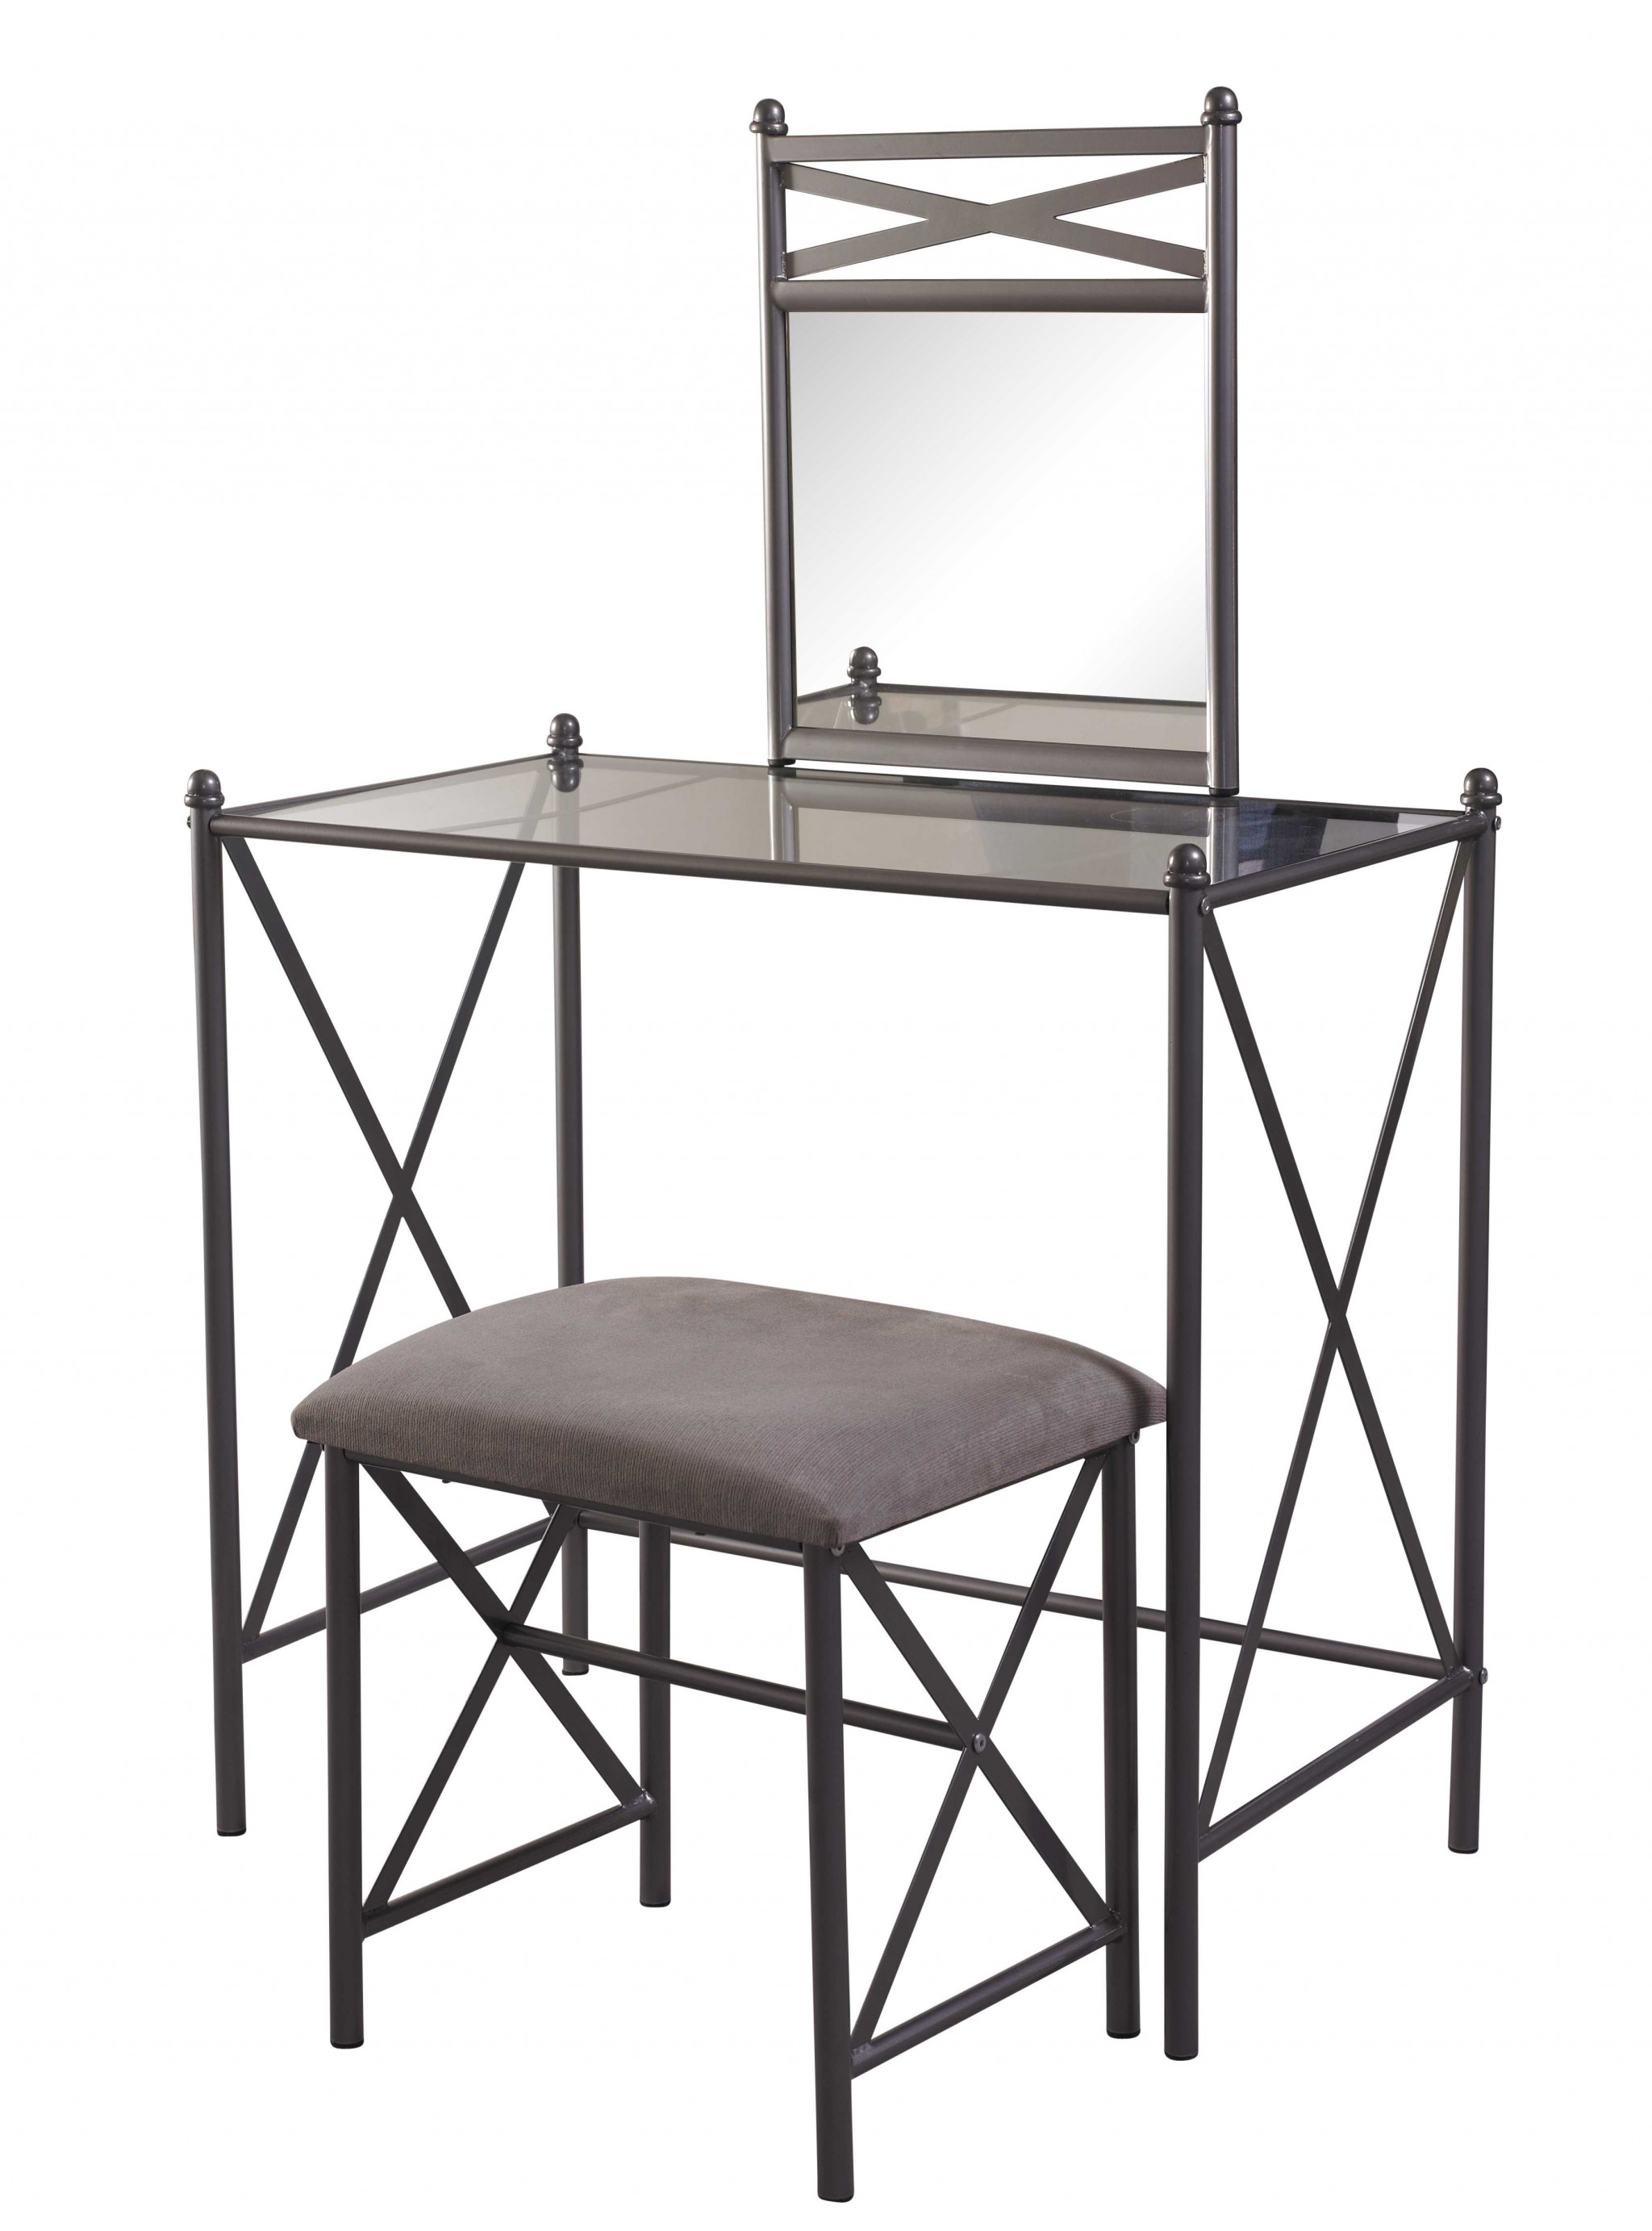 Metal and Glass Vanity Set with Crossbar Support, Brown and Black